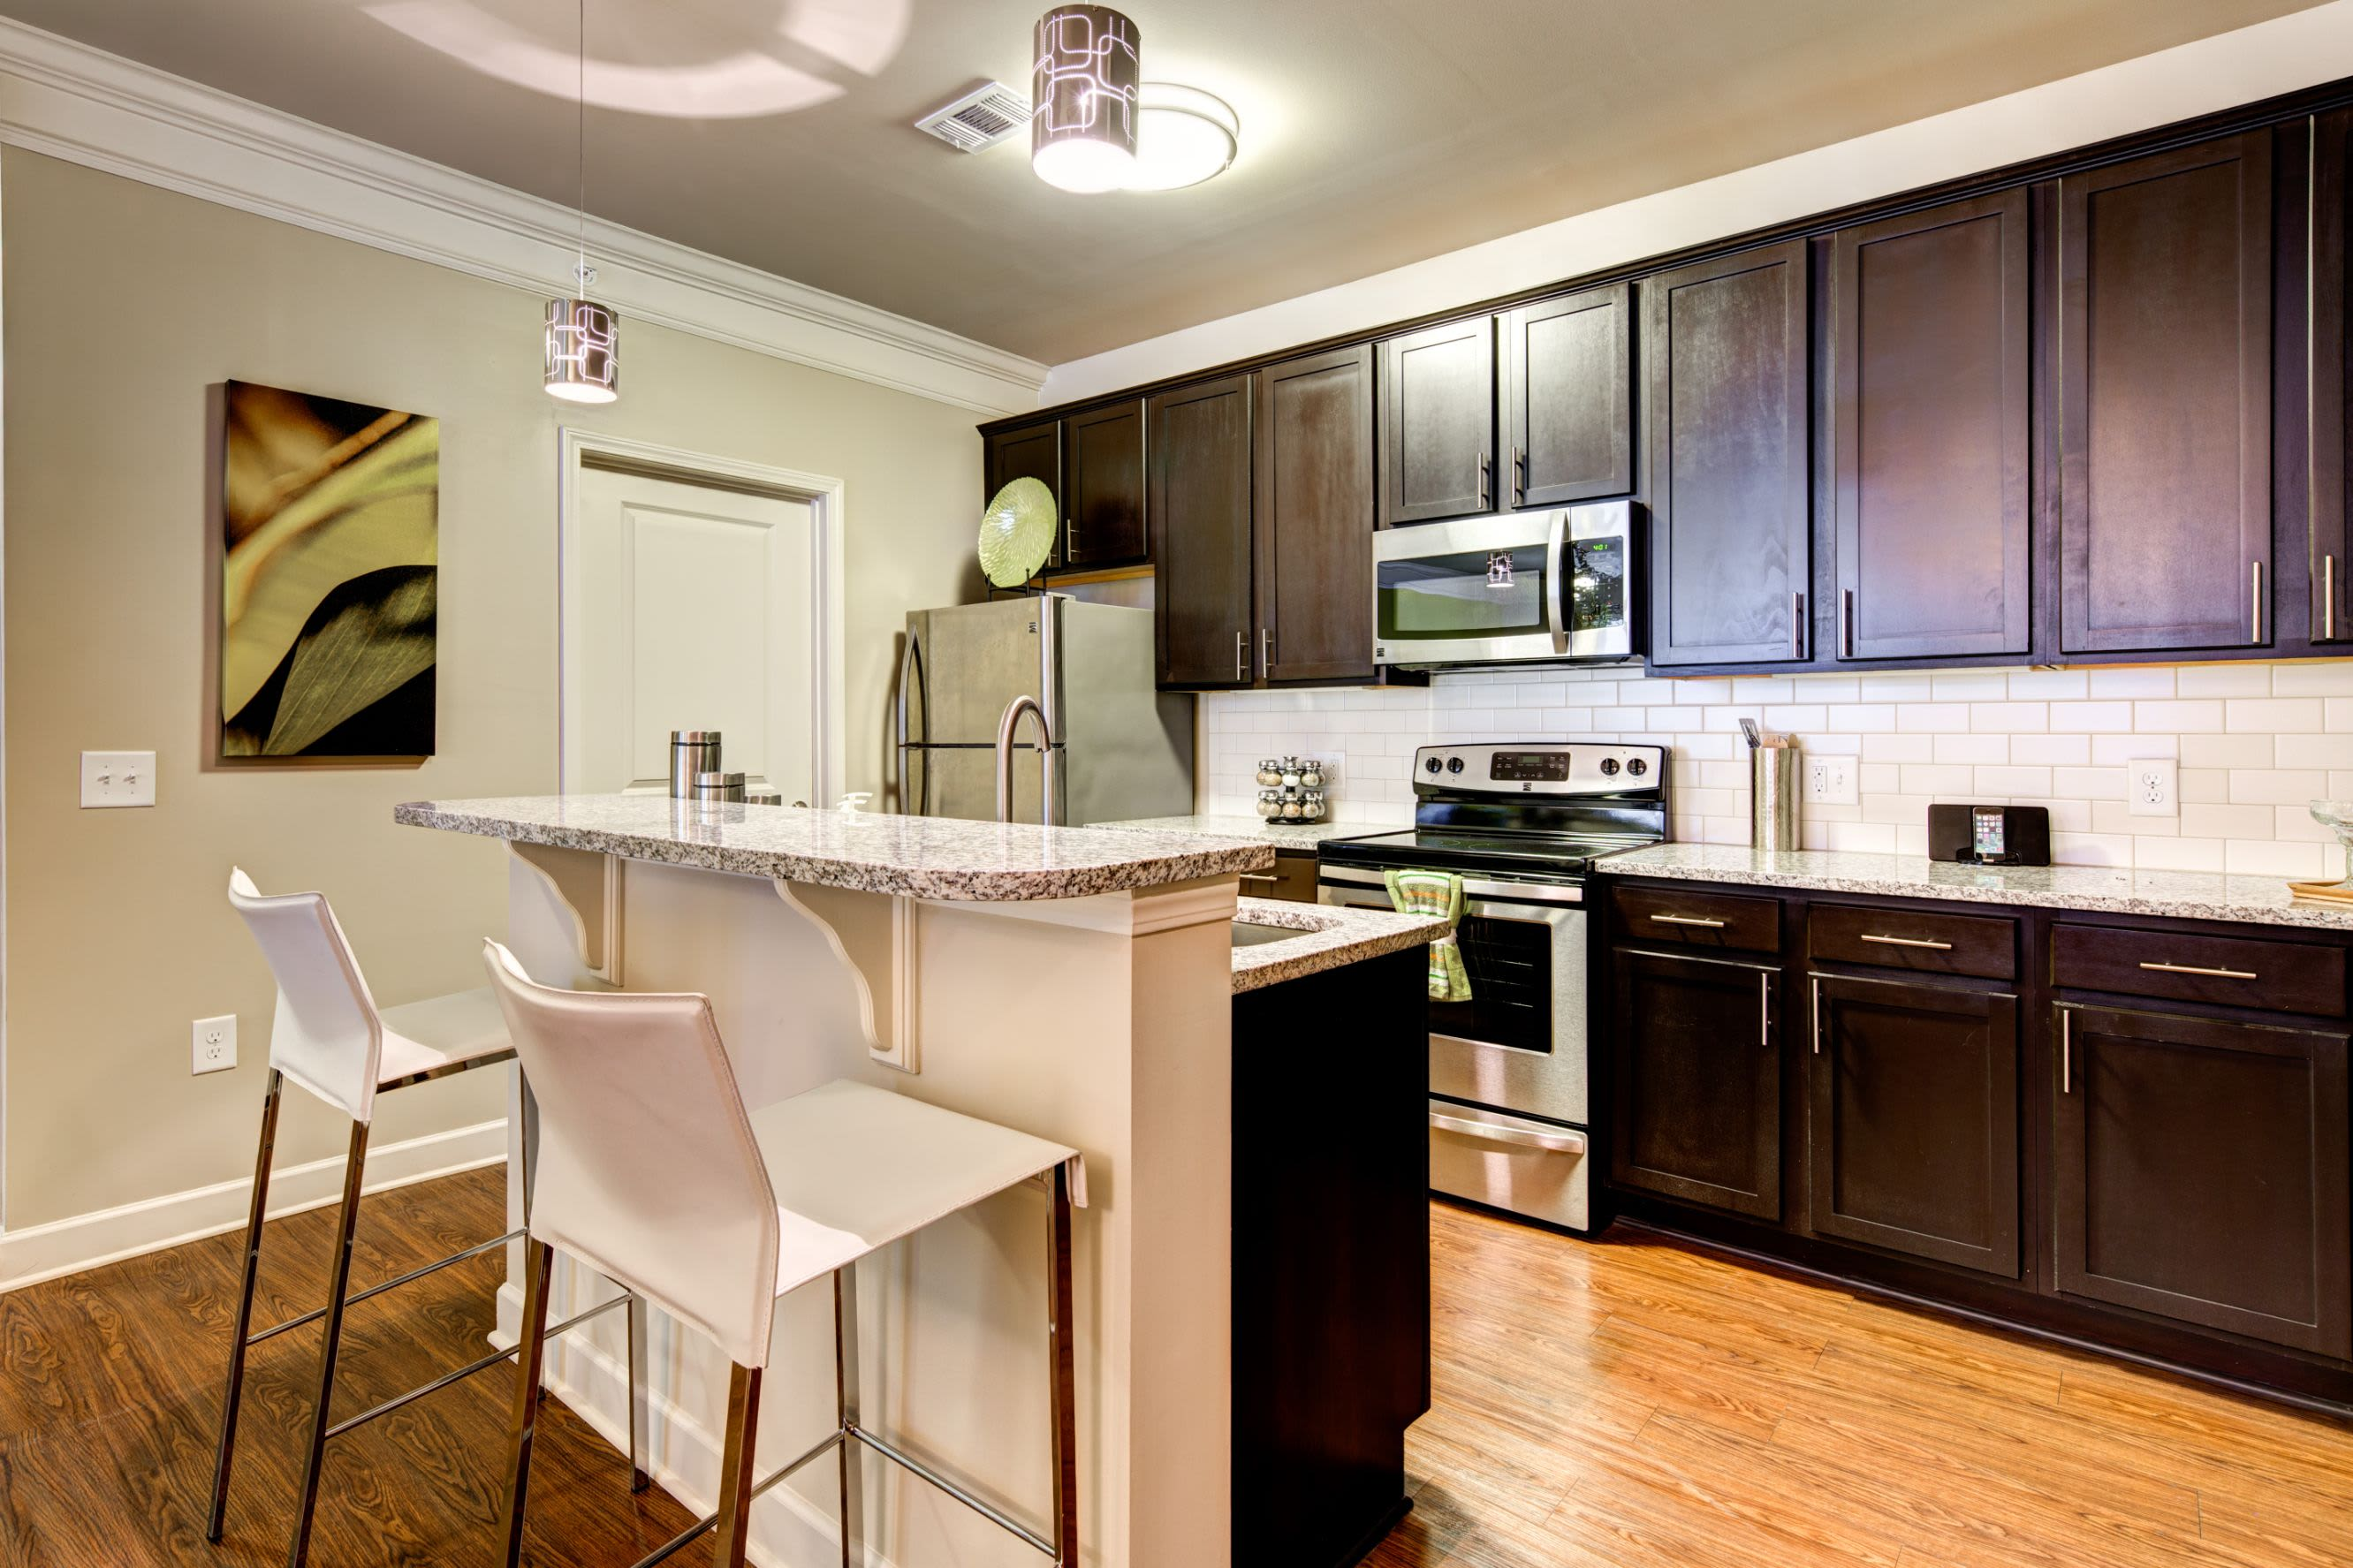 Modern kitchen with breakfast bar at Marquis at Morrison Plantation in Mooresville, North Carolina